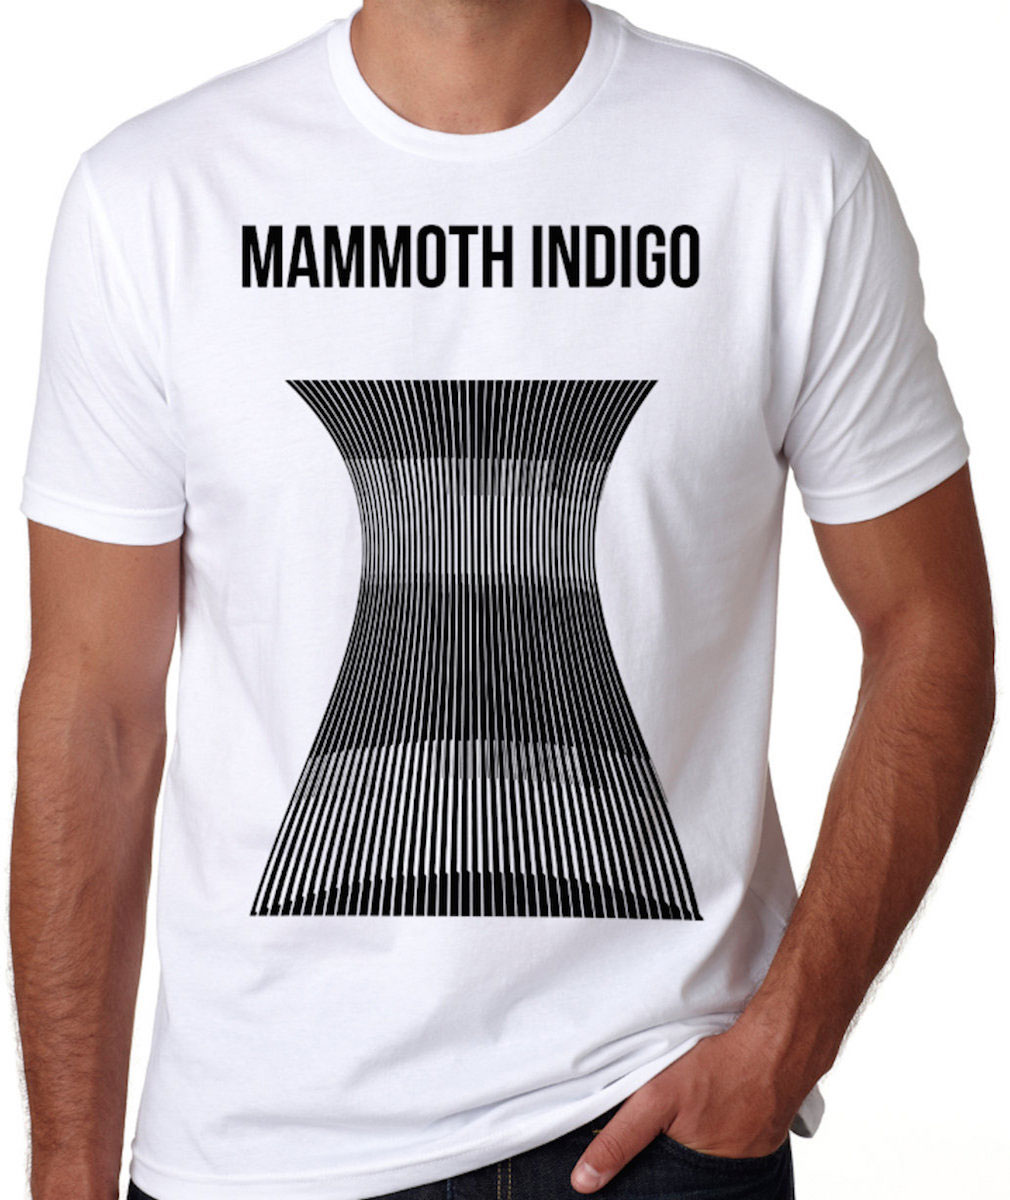 MammothIndigo_IllusionWhite.jpg